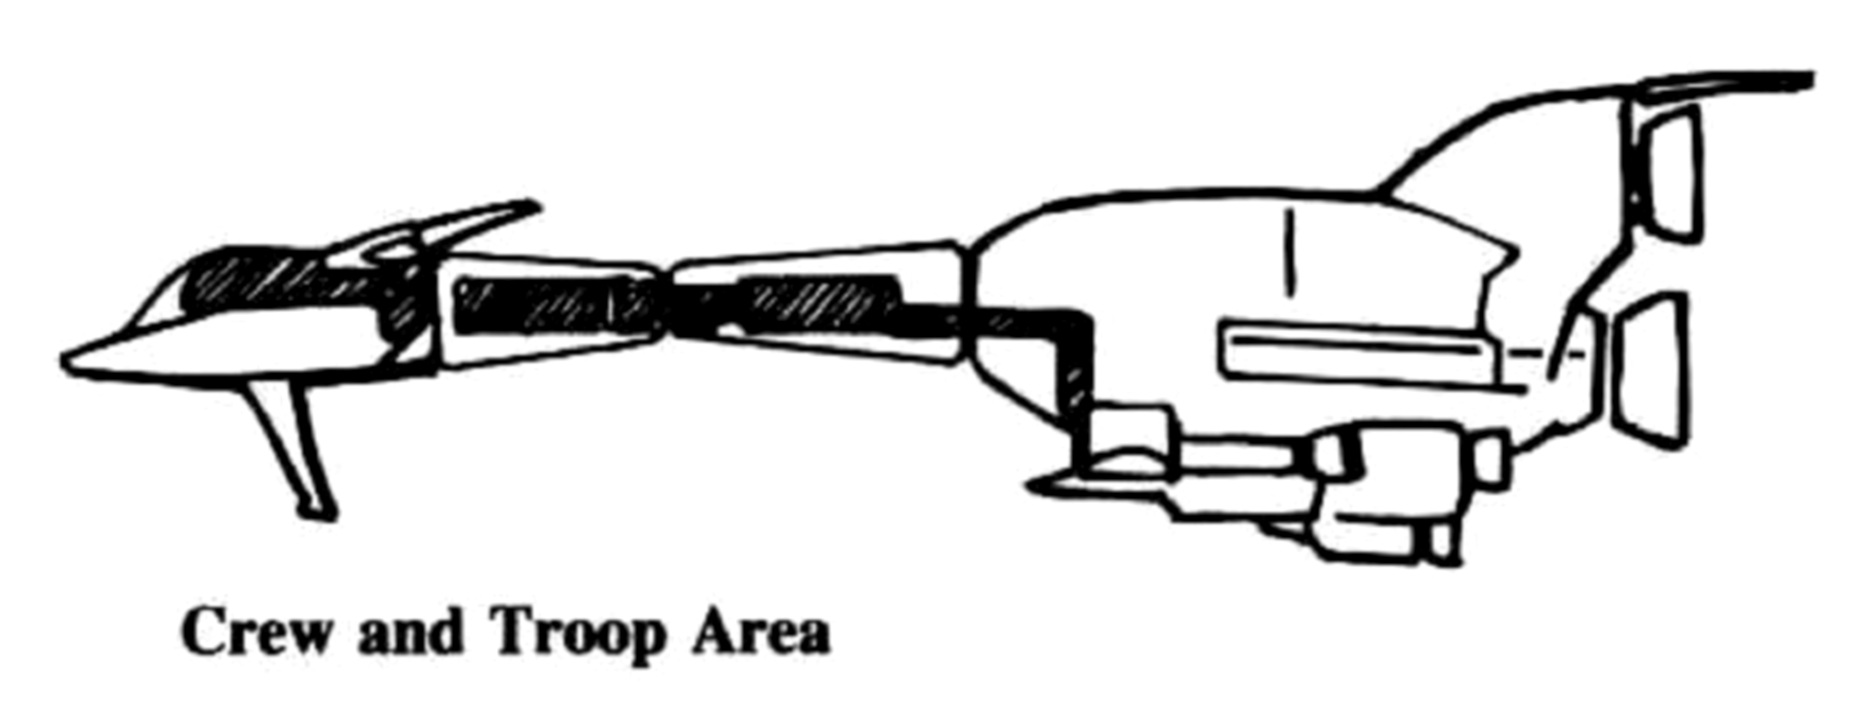 LCA-12 Horizont Cargo Dropship Aerospacecraft Alpha bay 20